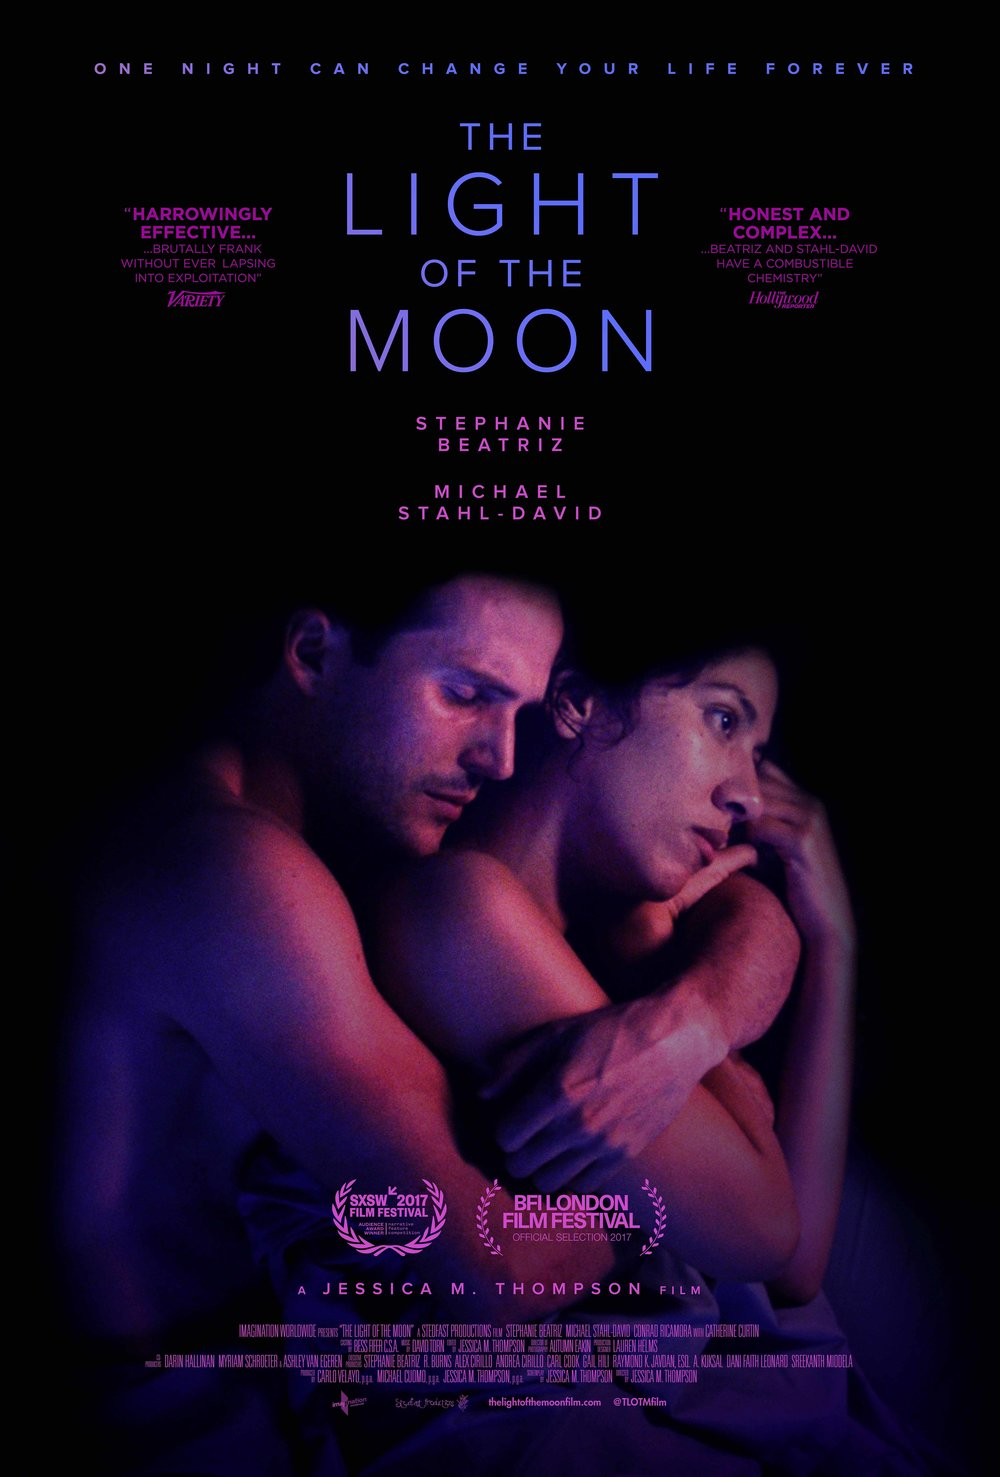 The Light of The Moon - Official Theatrical Poster.jpg